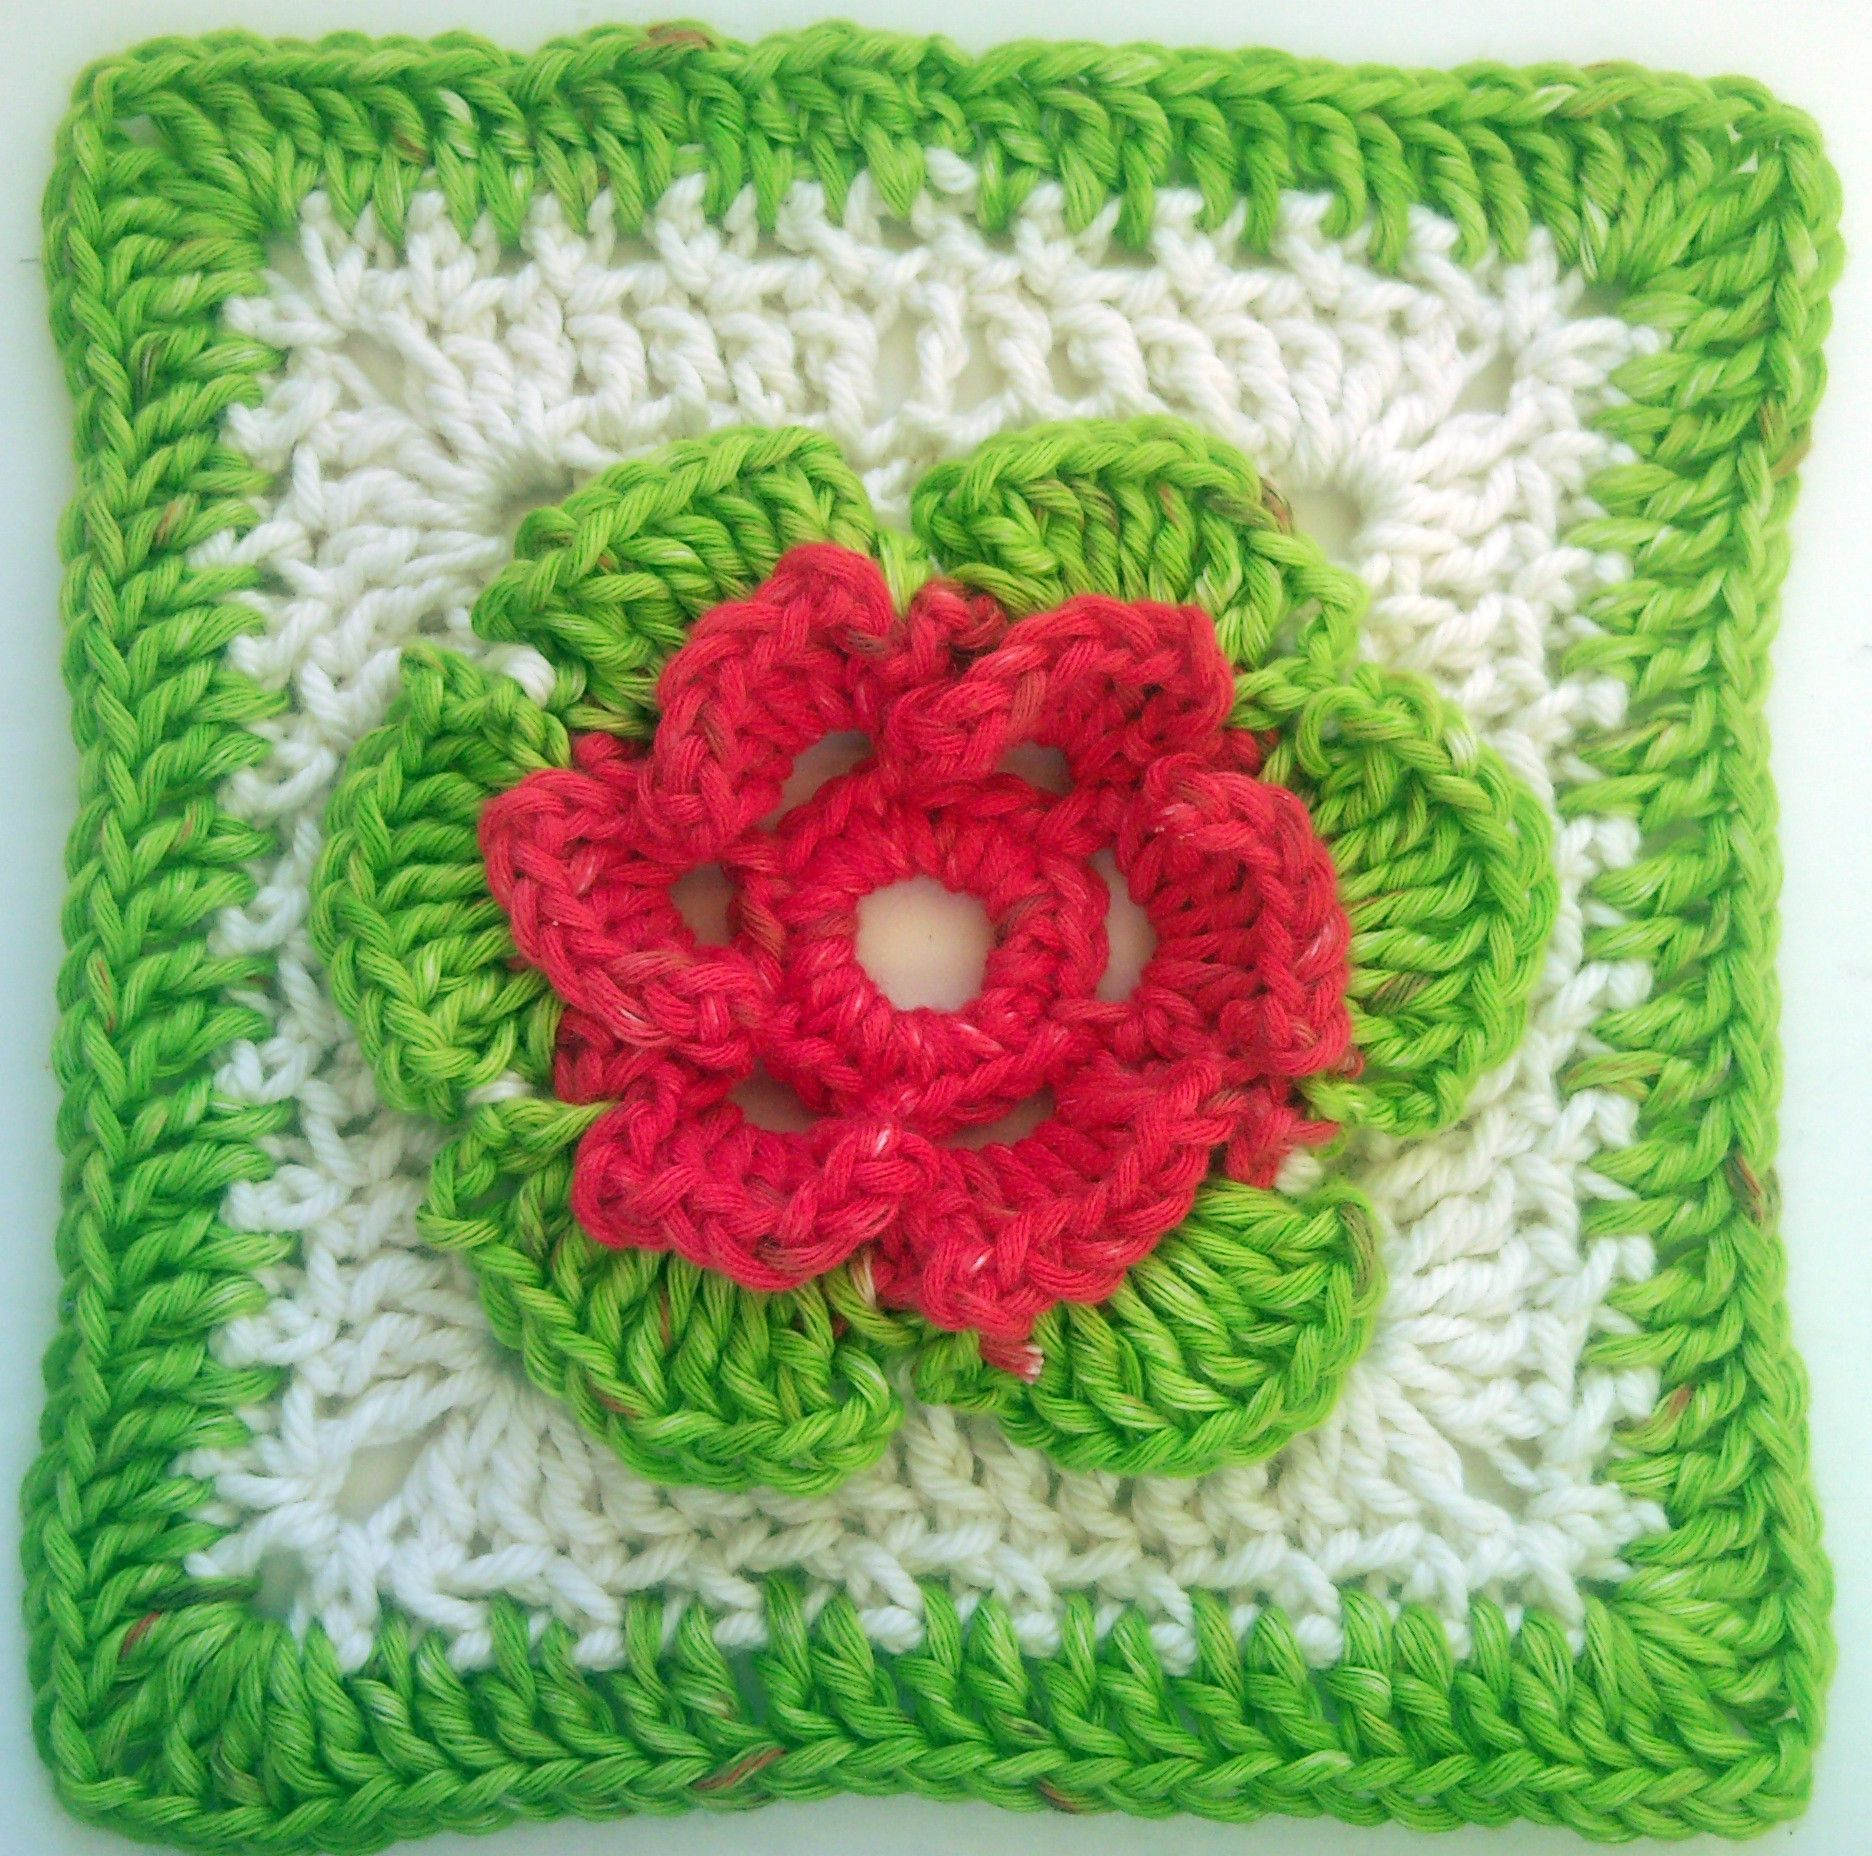 Awesome Not Just Granny Squares – Crochet Floral Squares – Free Crochet Flower Square Of Bril...